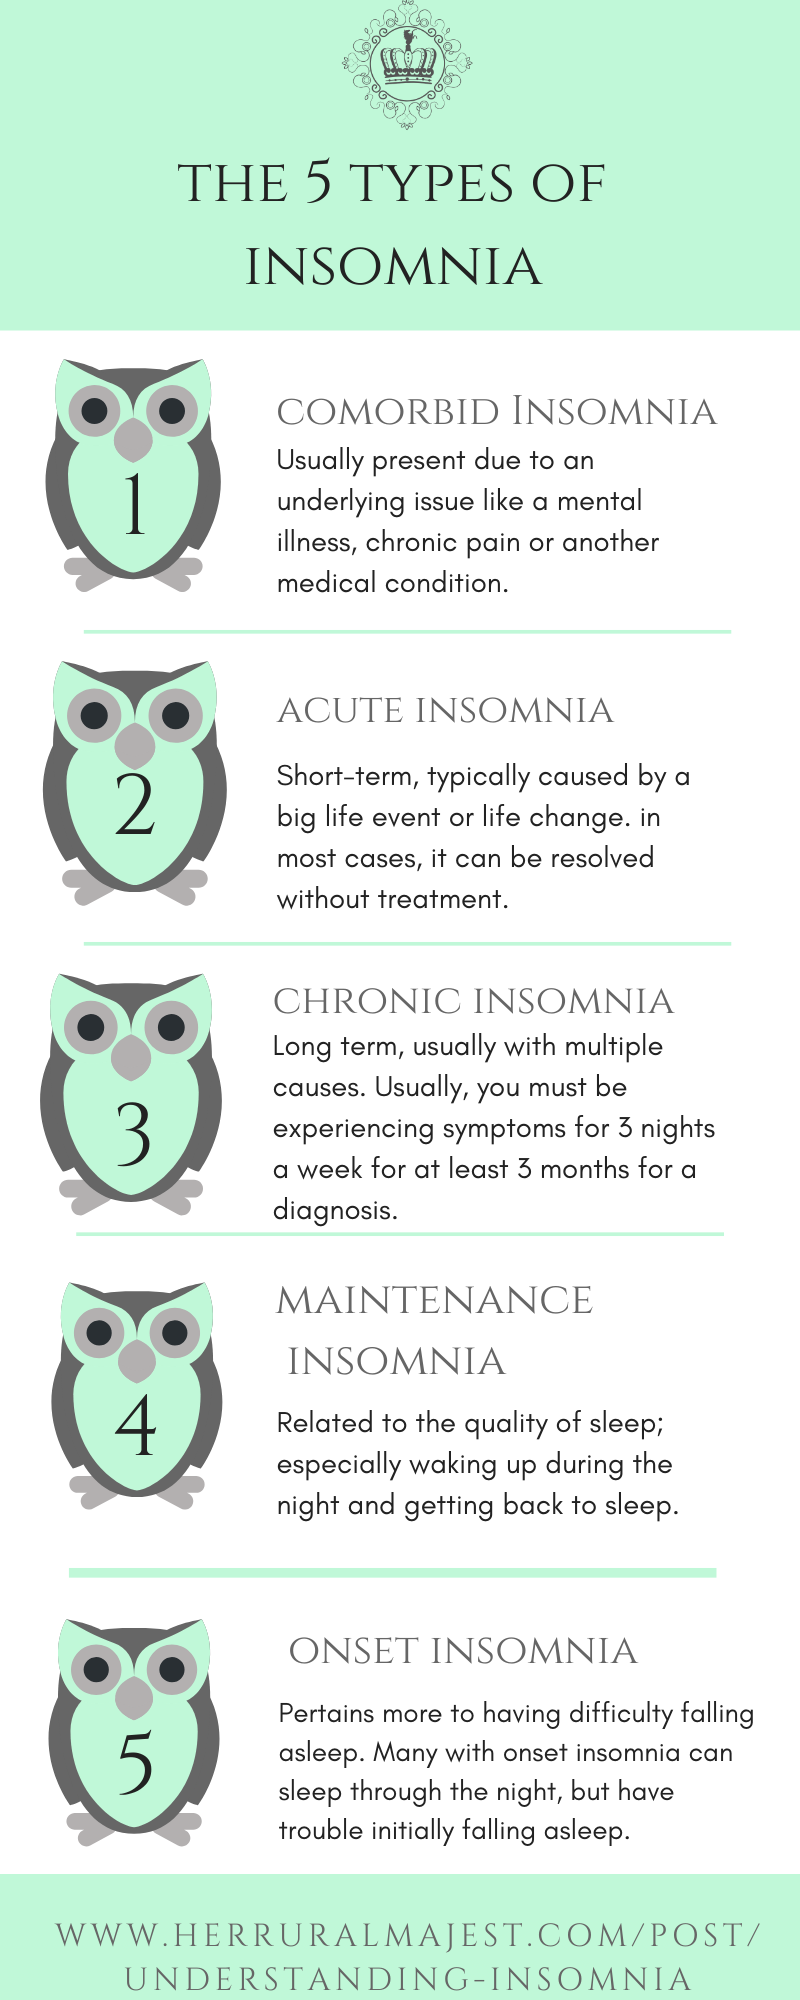 5 Types of Insomnia